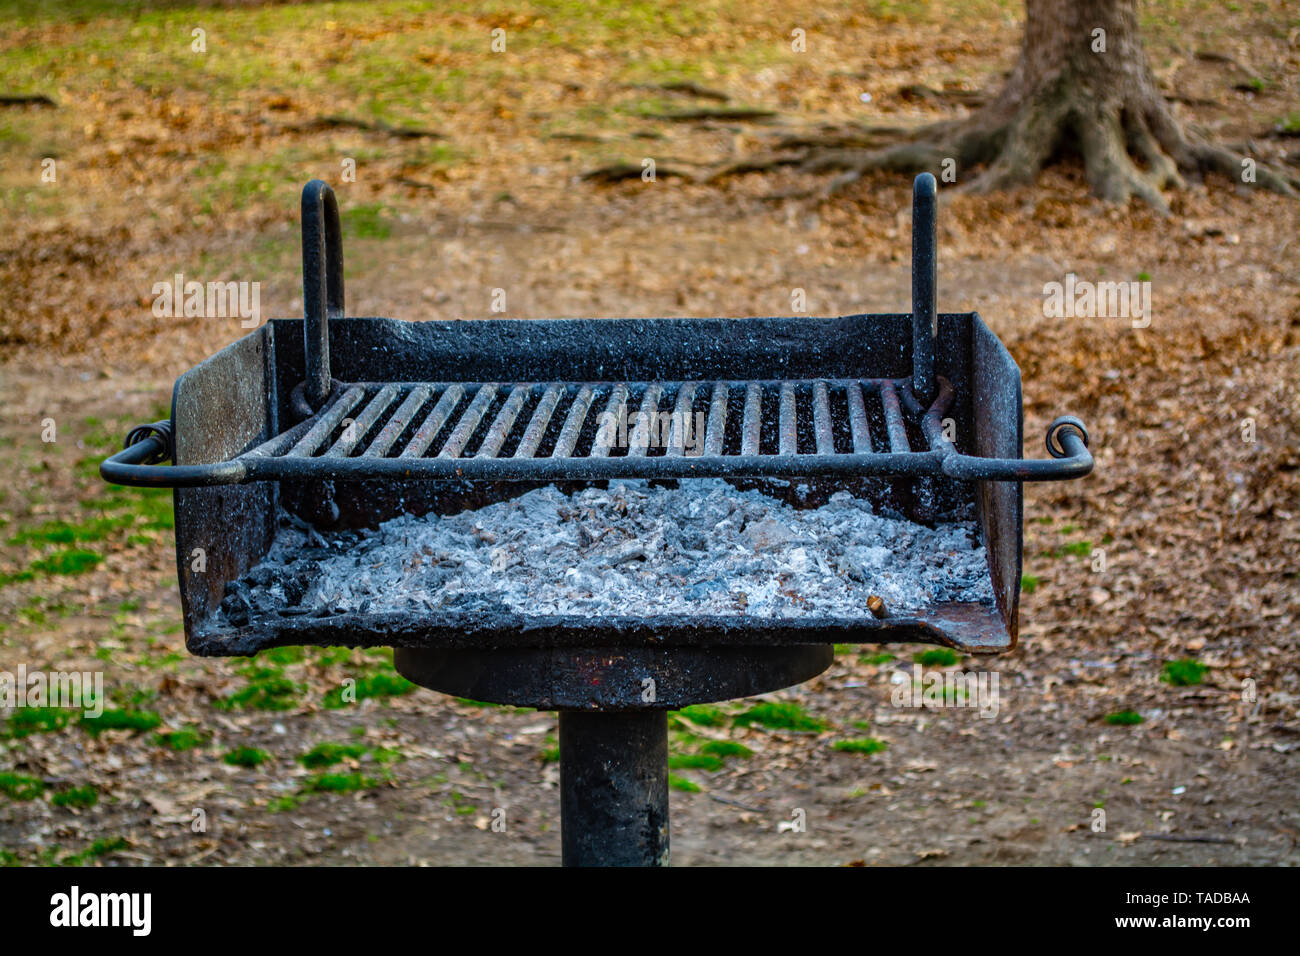 Burned charcoals and white soot on the barbecue grill in the park. - Stock Image